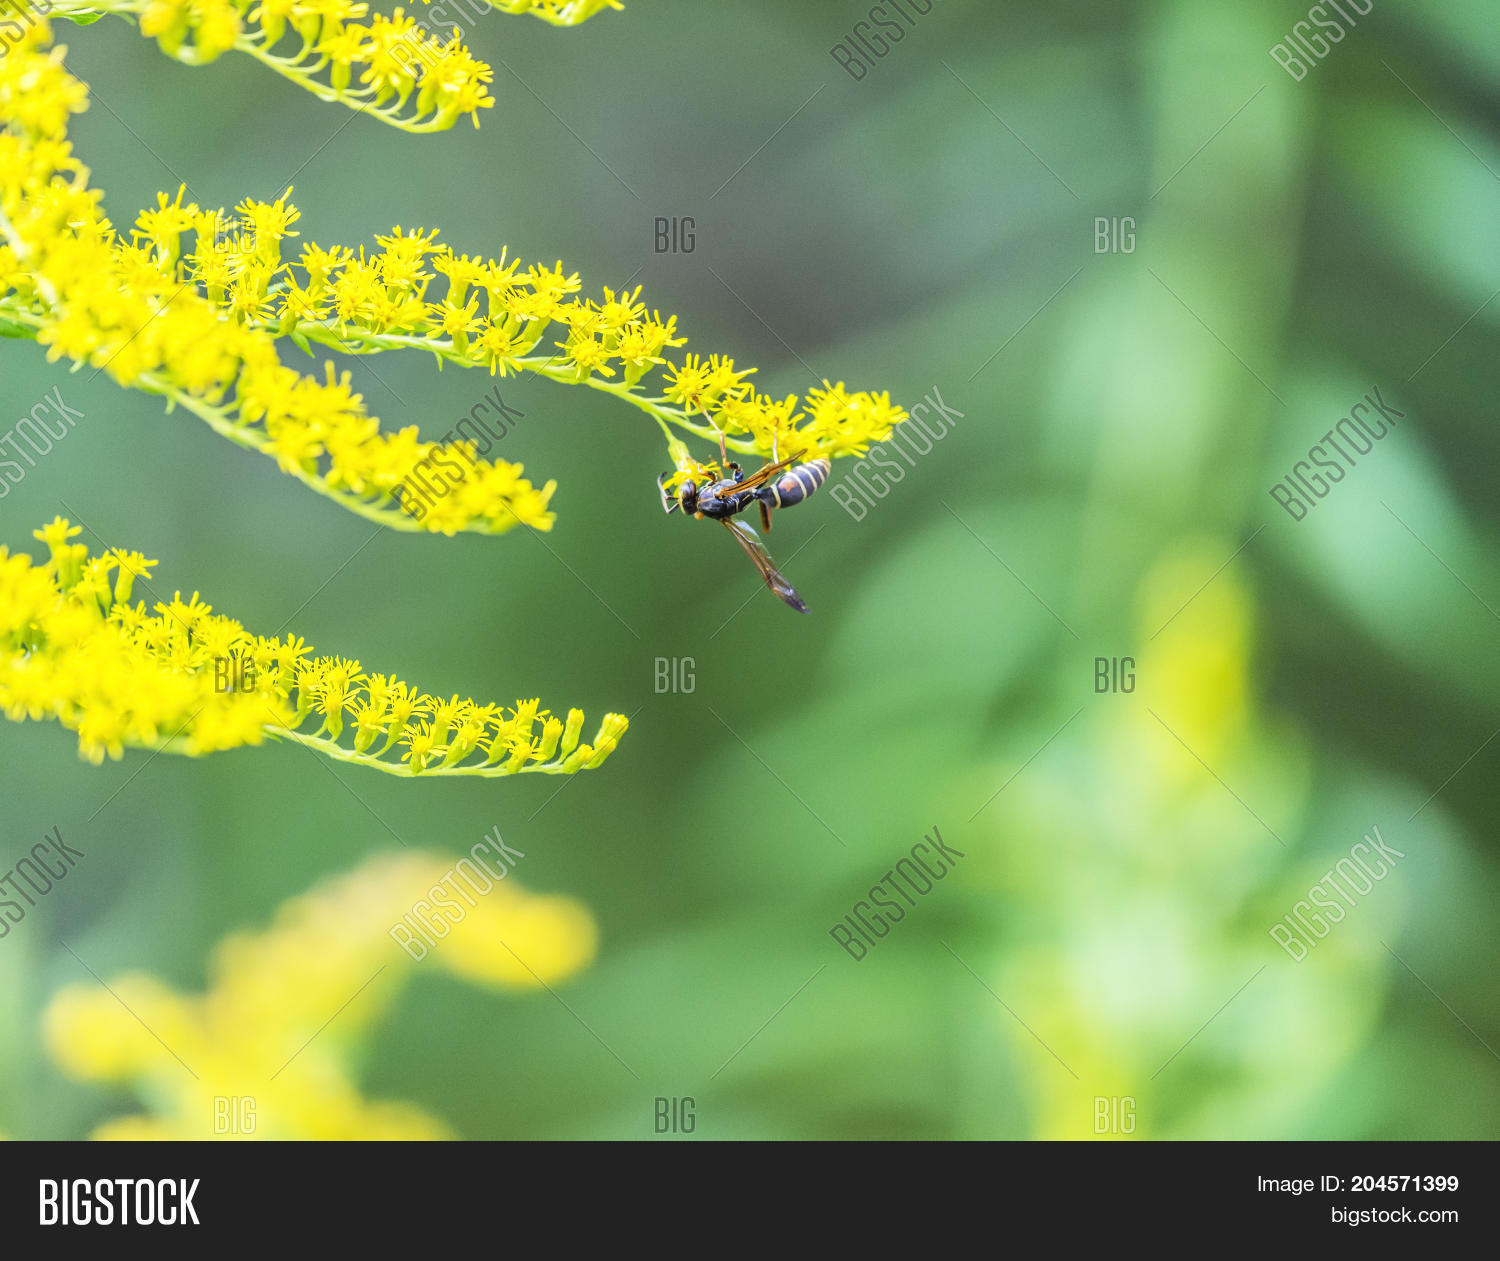 Hornet Bee Perched On Image Photo Free Trial Bigstock